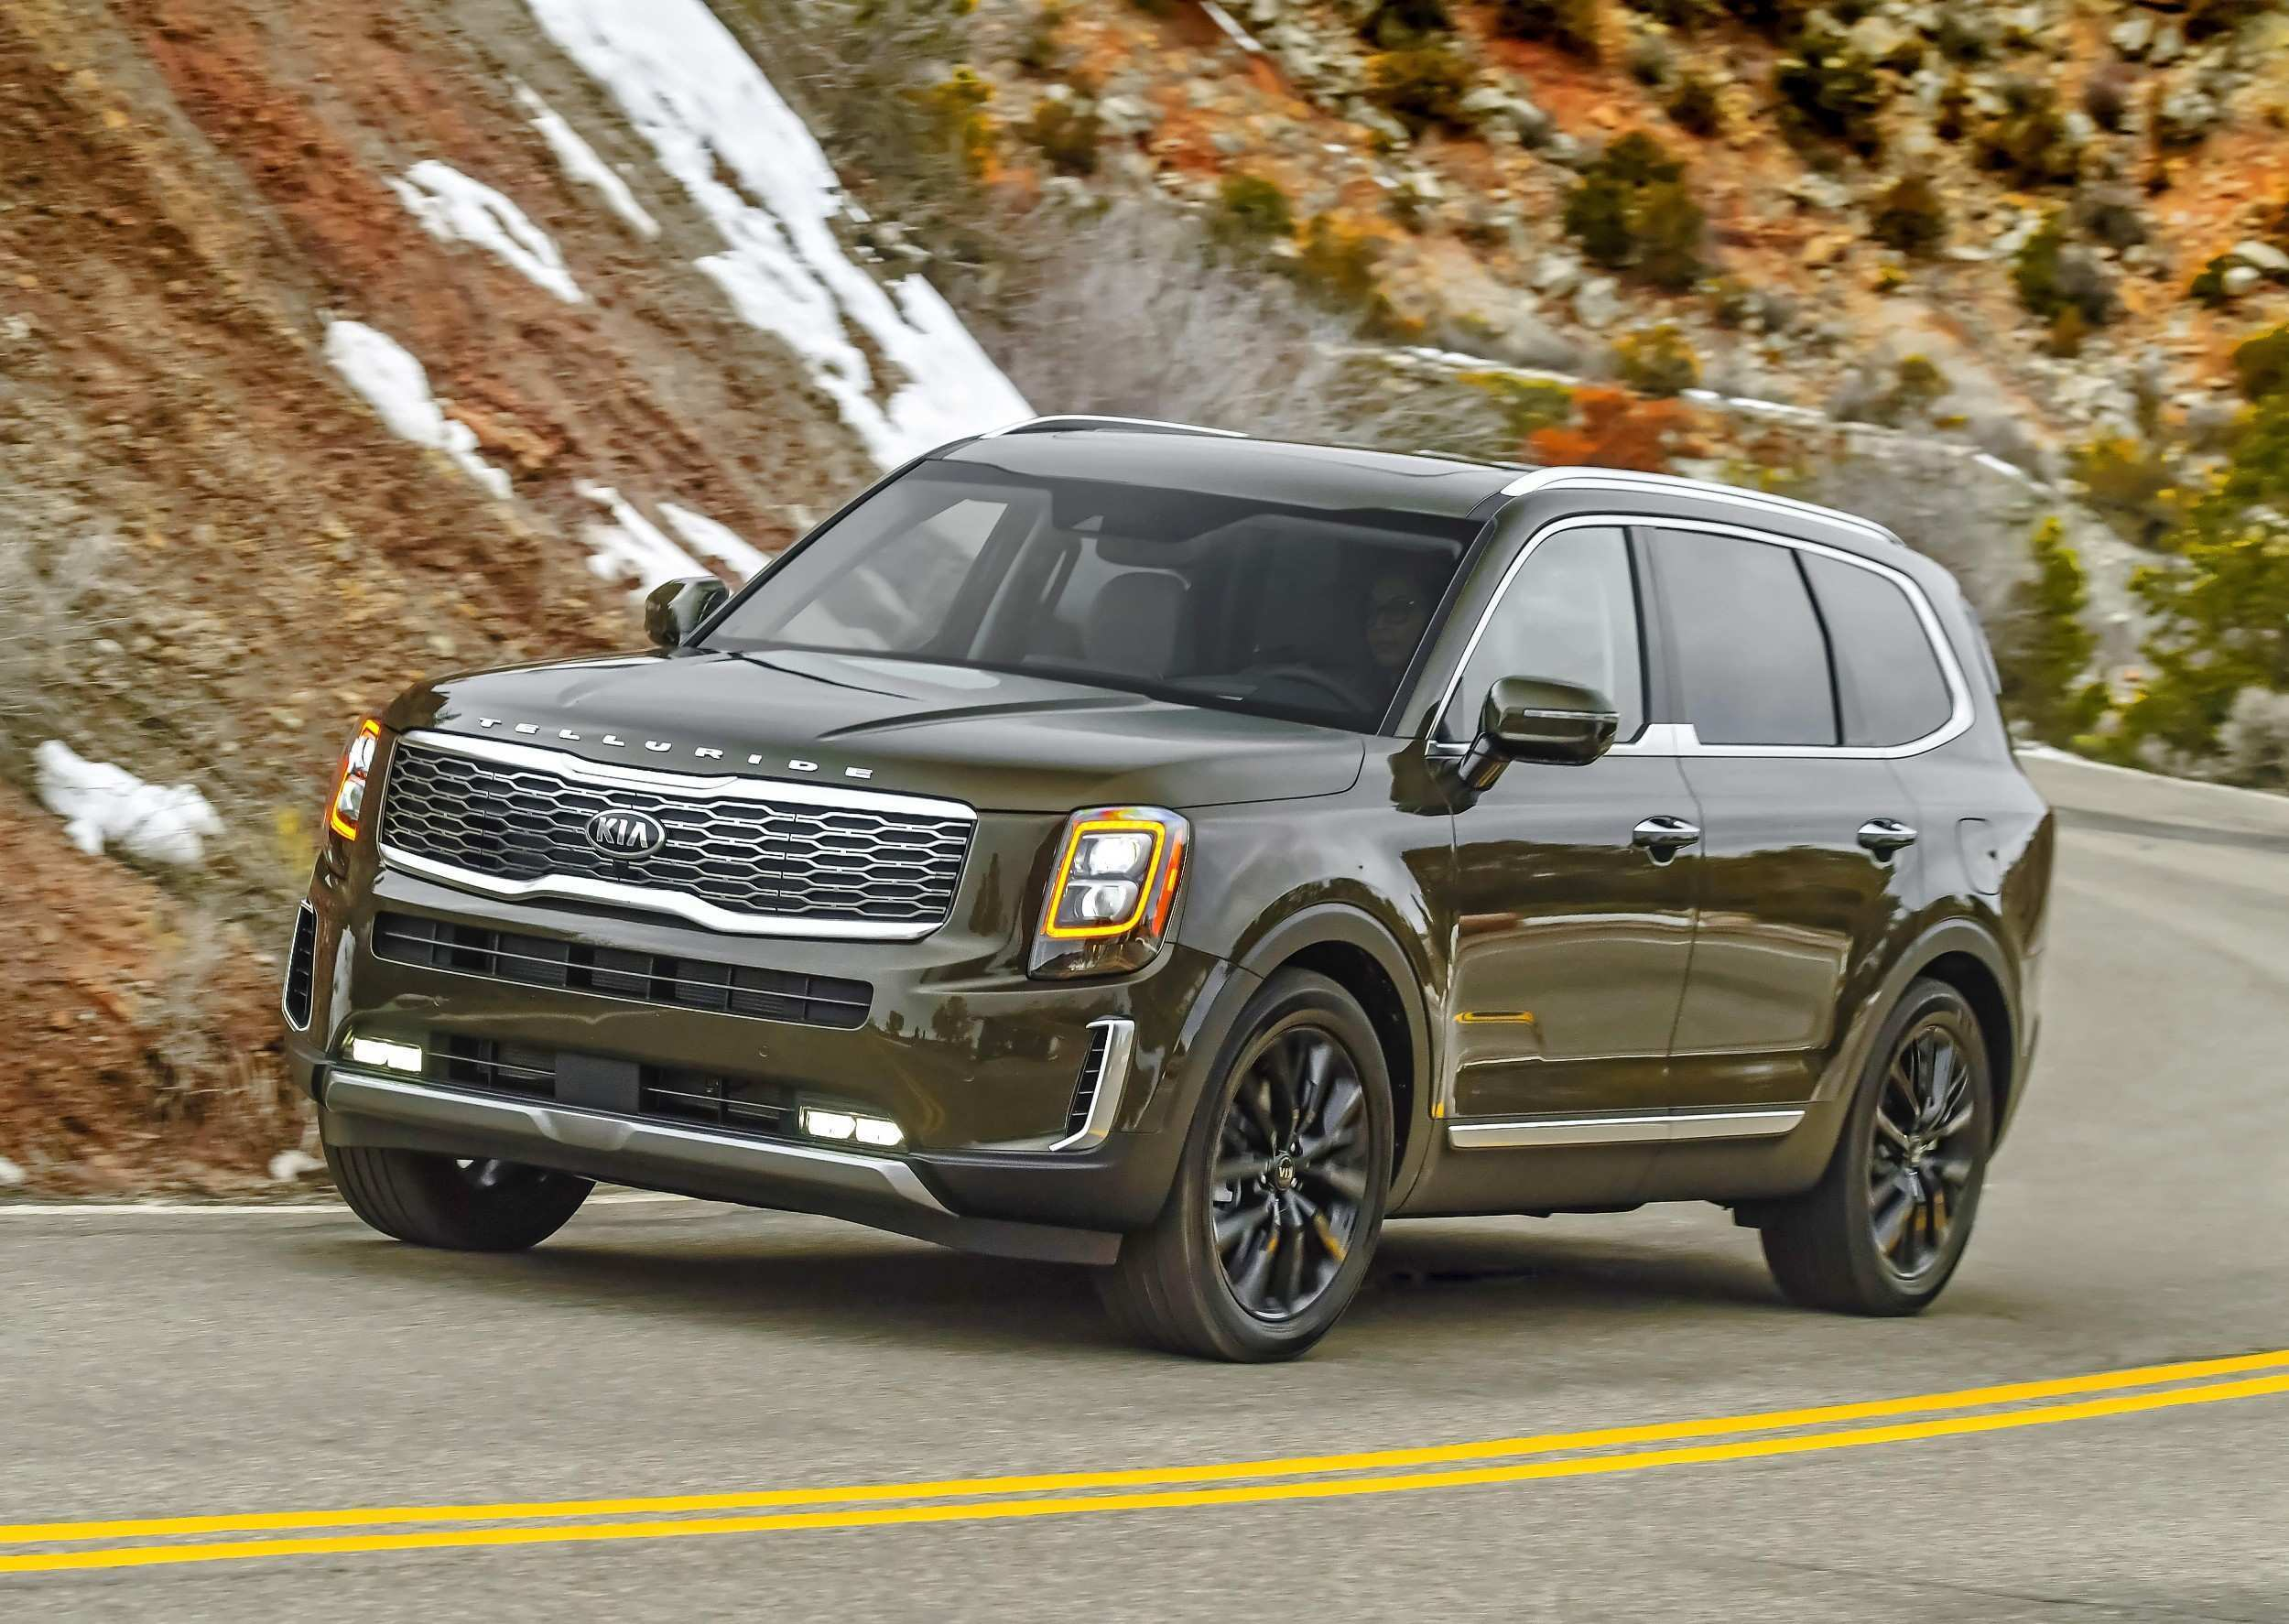 79 The Best 2020 Kia Telluride Length Overview